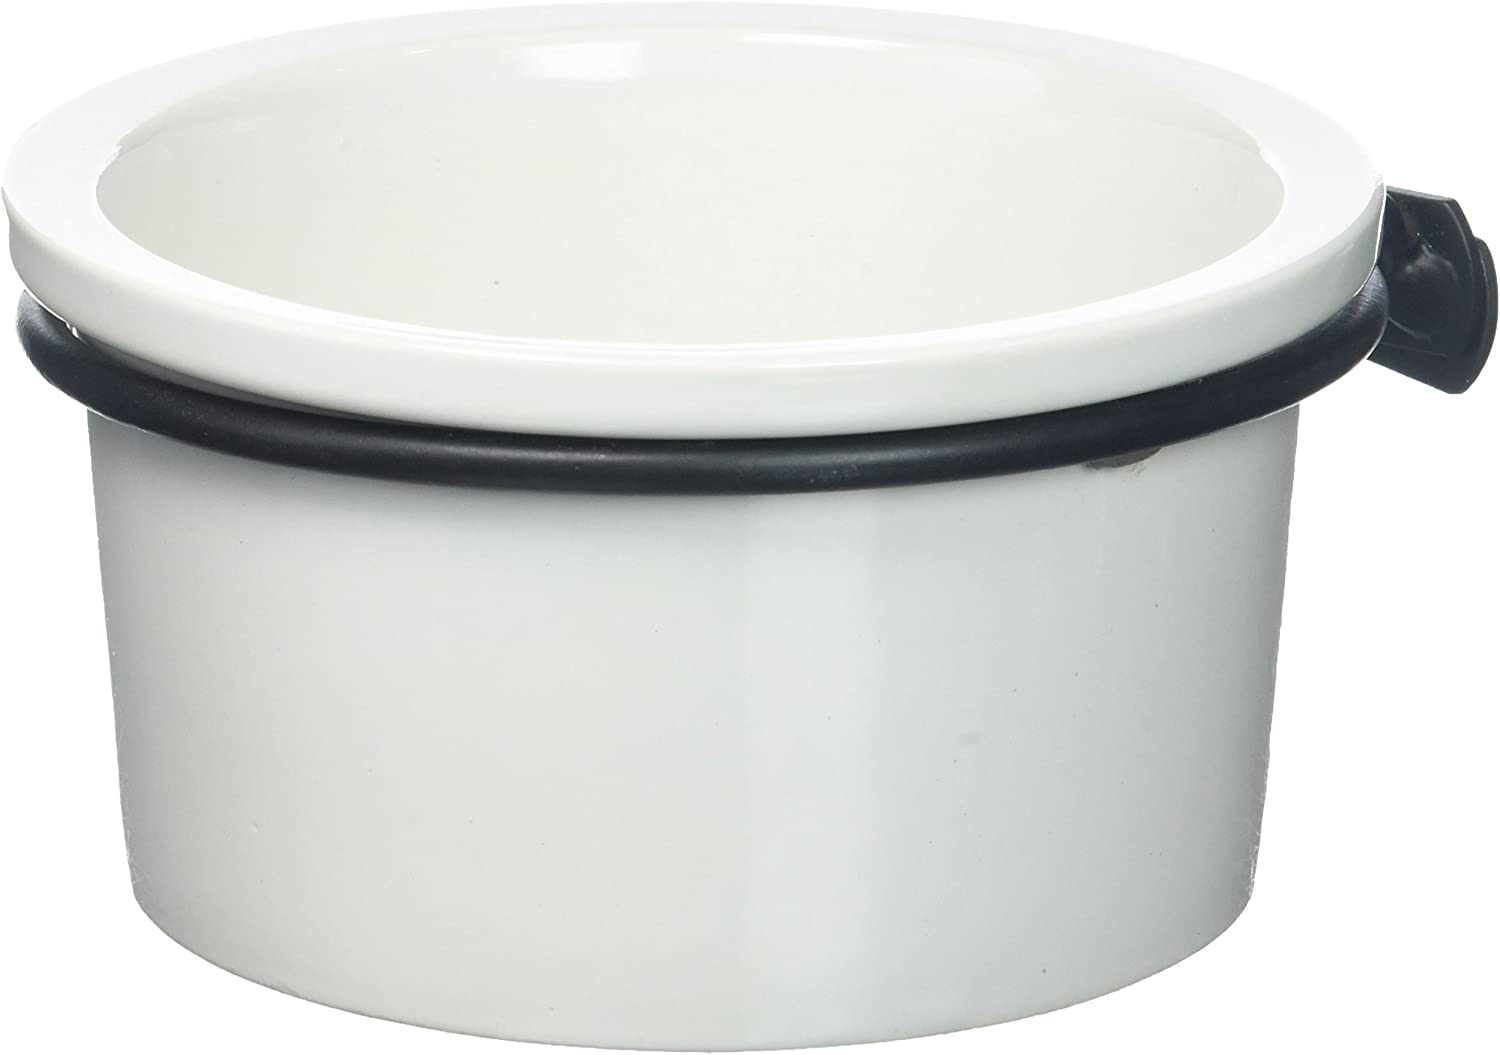 Prevue Pet Products BPV6401 Ceramic Marble Crock Dish Birds Cups, 14-Ounce, Assorted colors